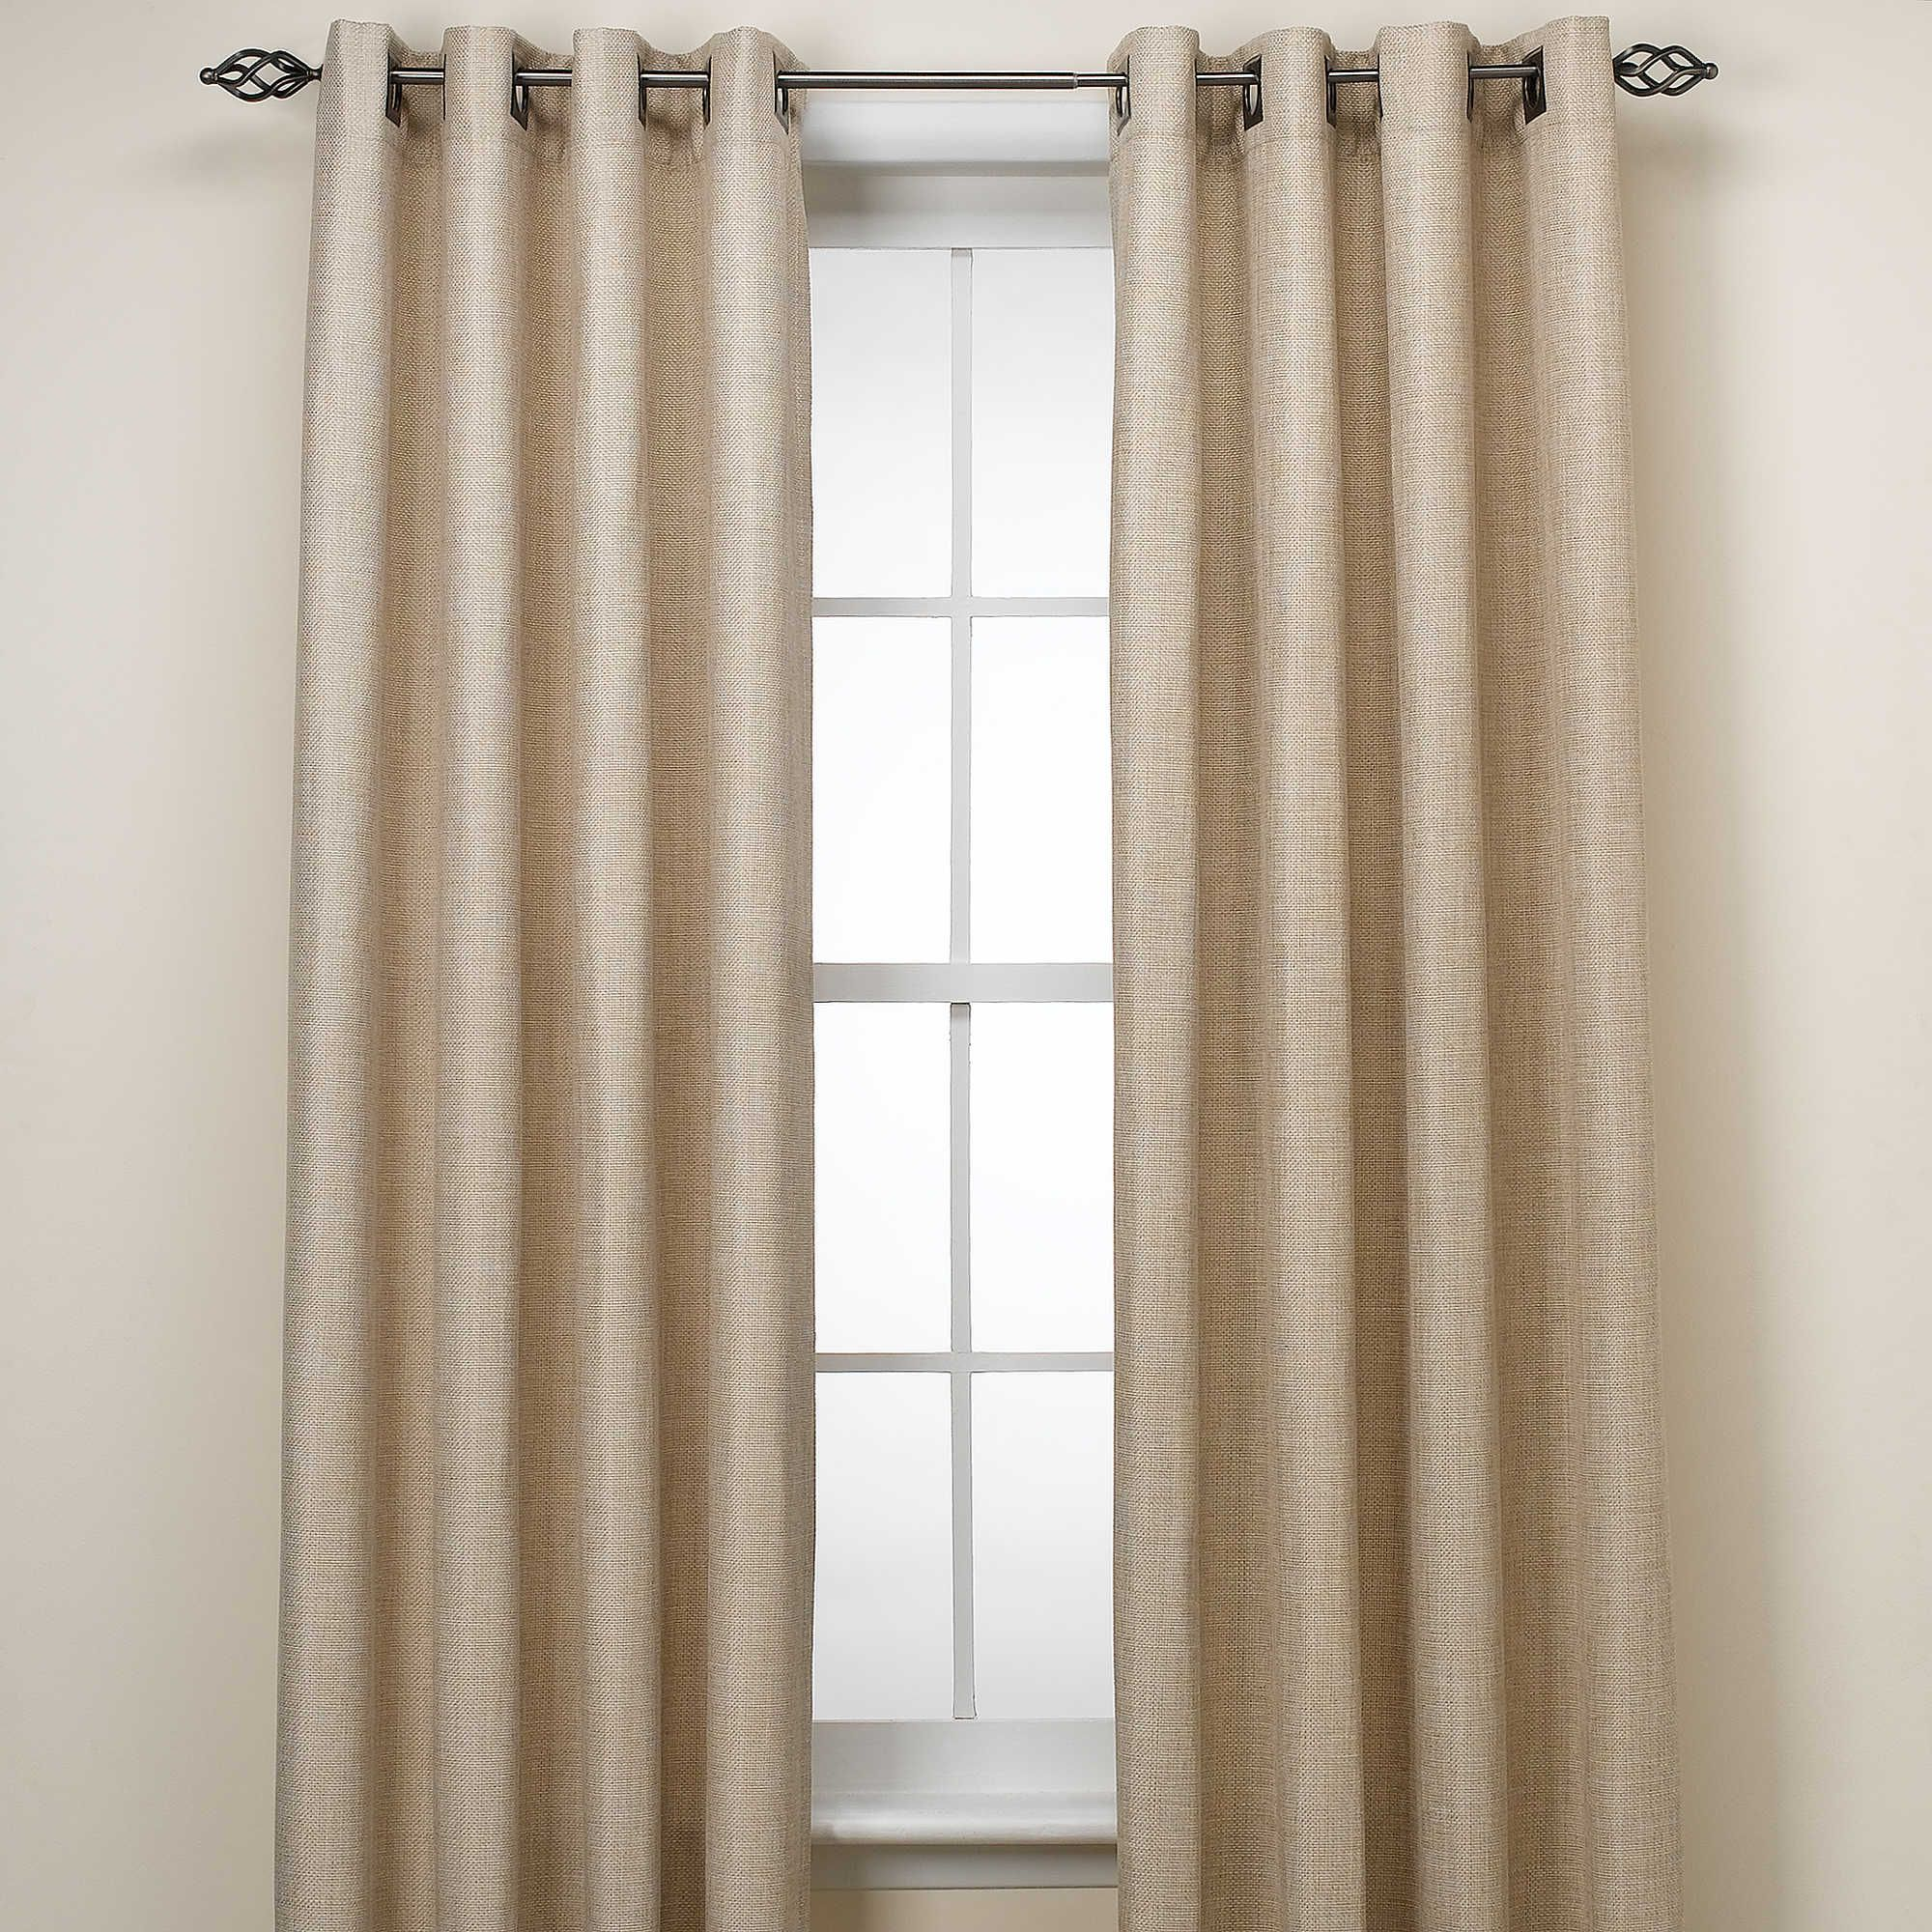 Reina 95 Inch Grommet Top Window Curtain Panel In Ivory Curtains